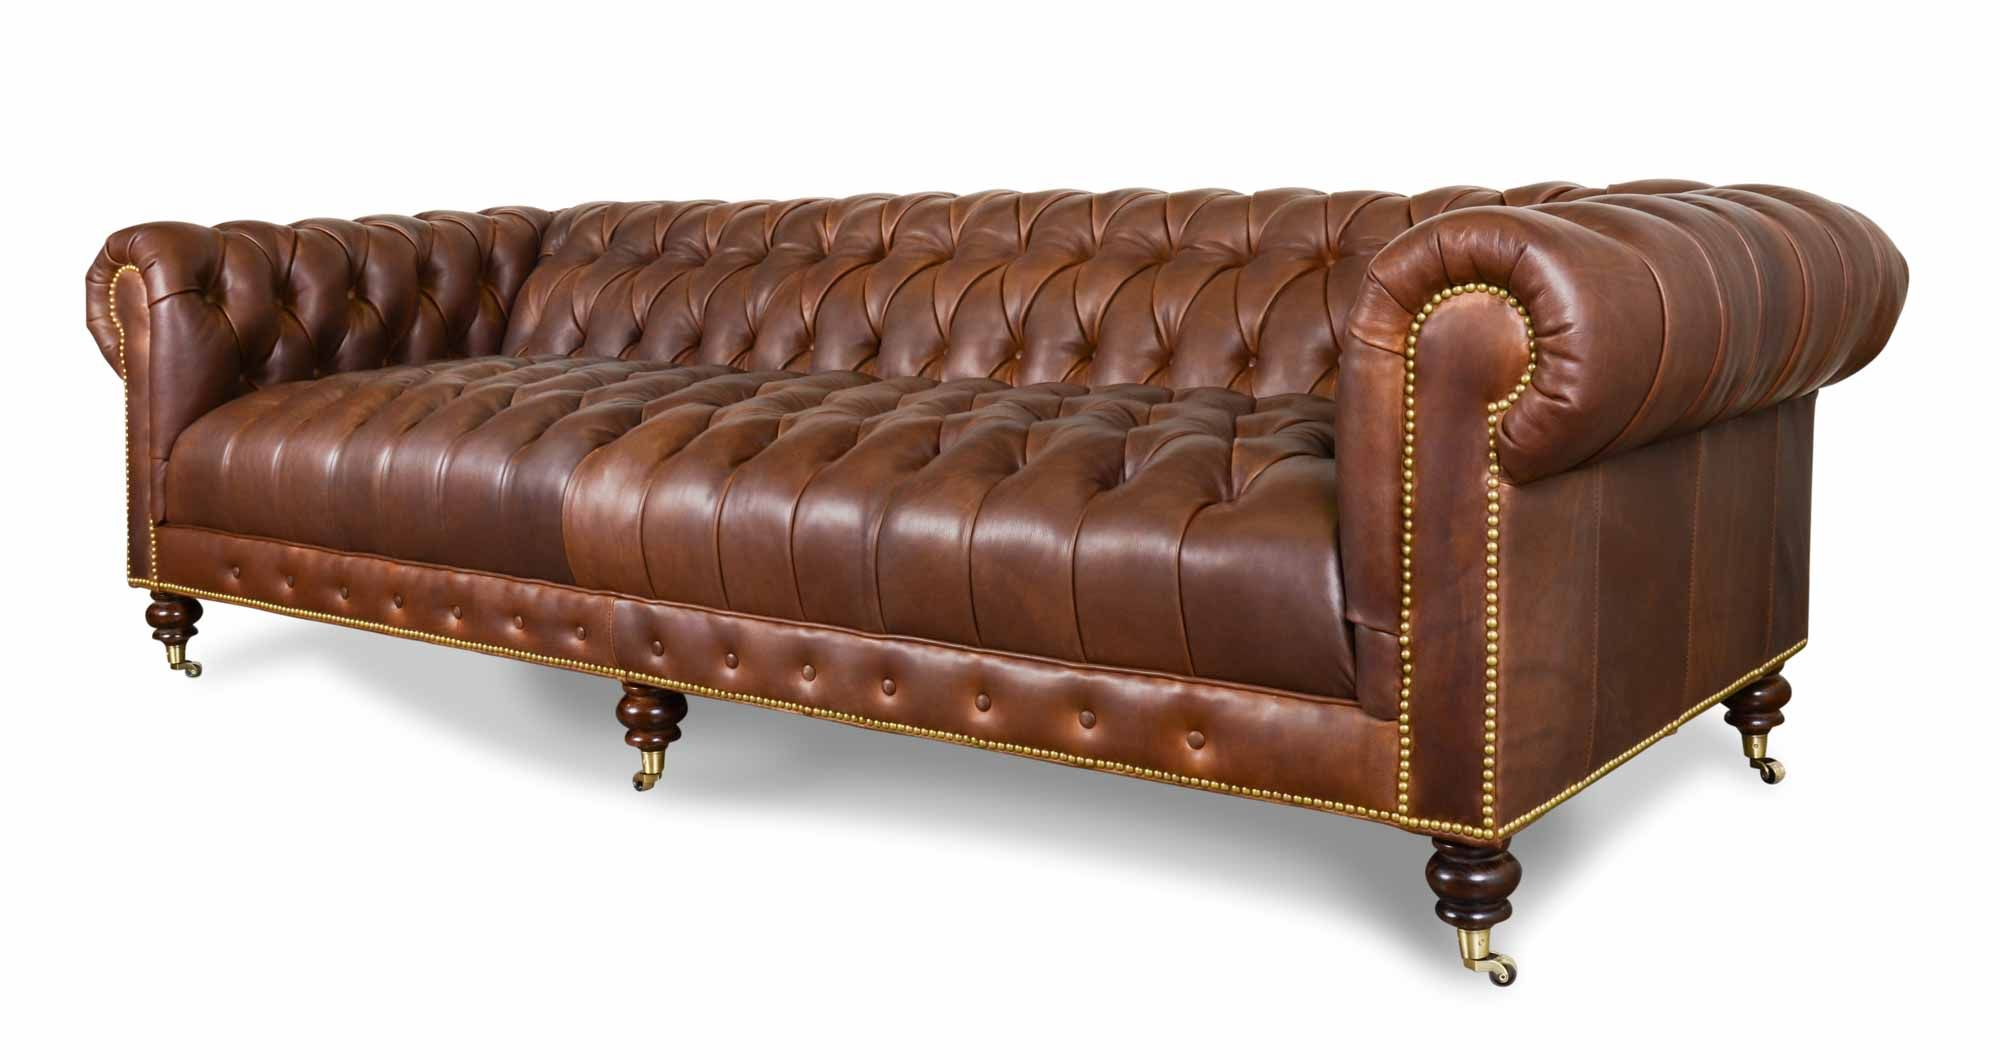 Braun Leder Chesterfield Sofa